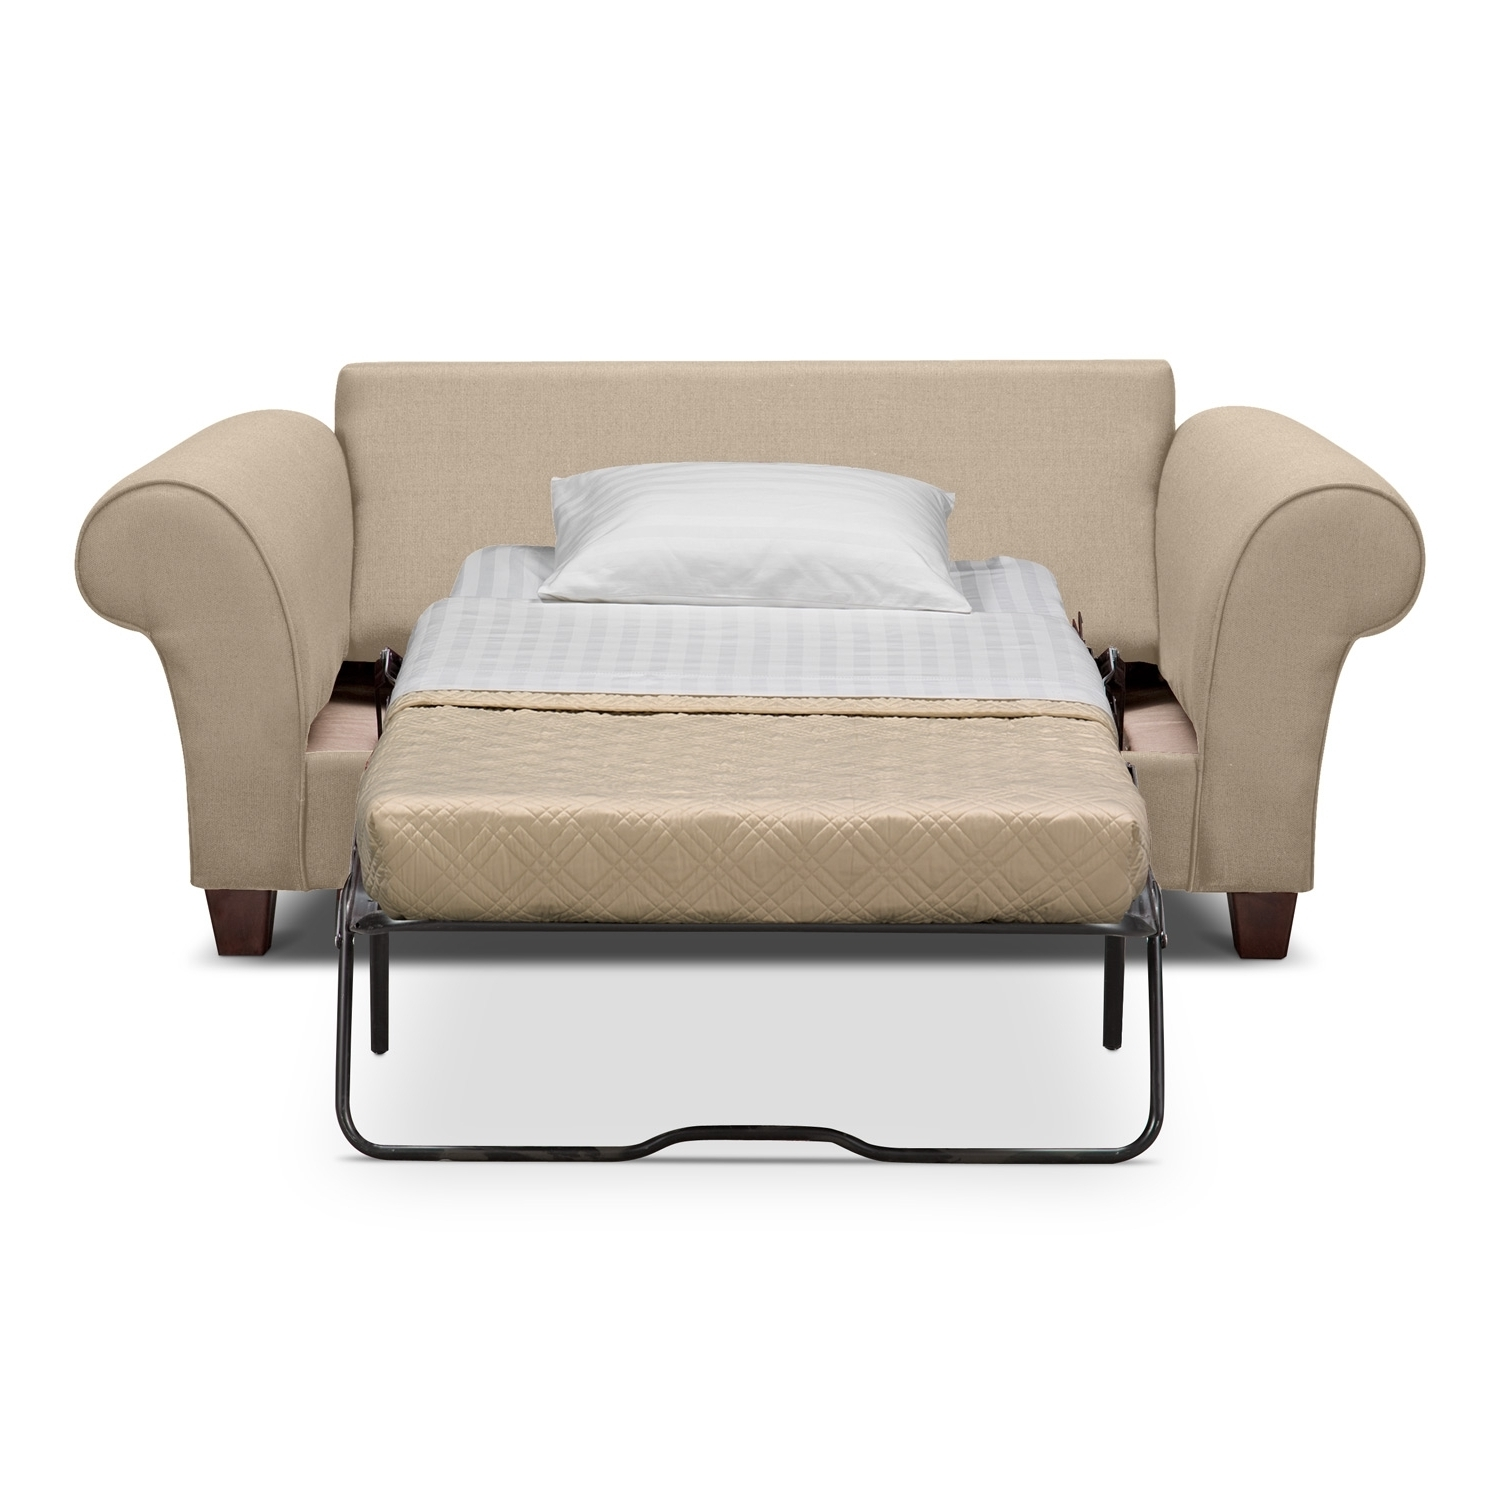 Unique Chair Bed Twin Sleeper — Jacshootblog Furnitures : Chair With Regard To Most Popular Twin Sleeper Sofa Chairs (View 8 of 20)